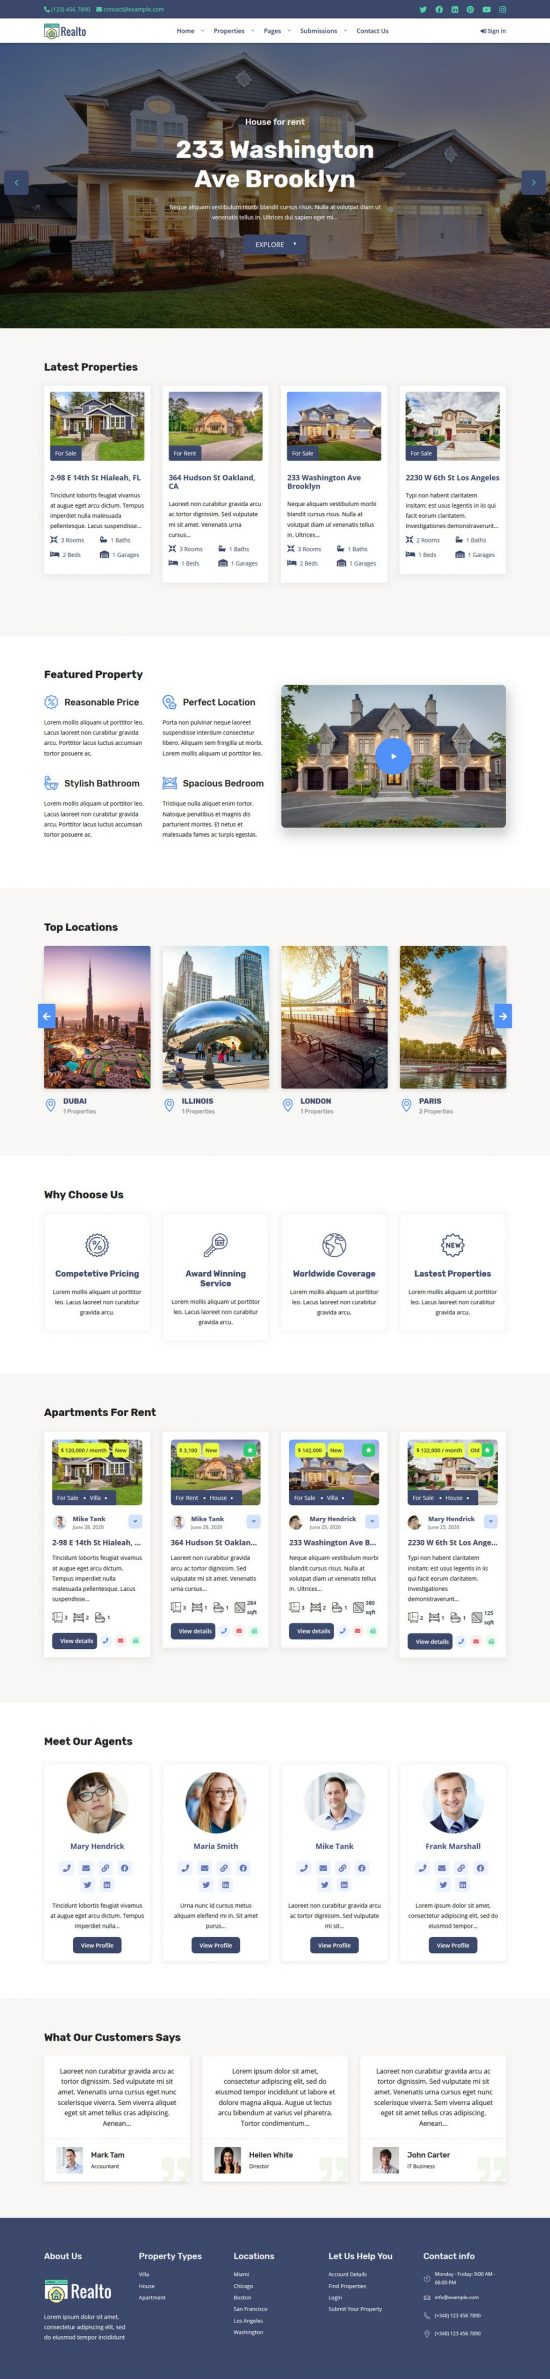 realto premium wordpress theme 01 550x2379 - Realto Premium WordPress Theme